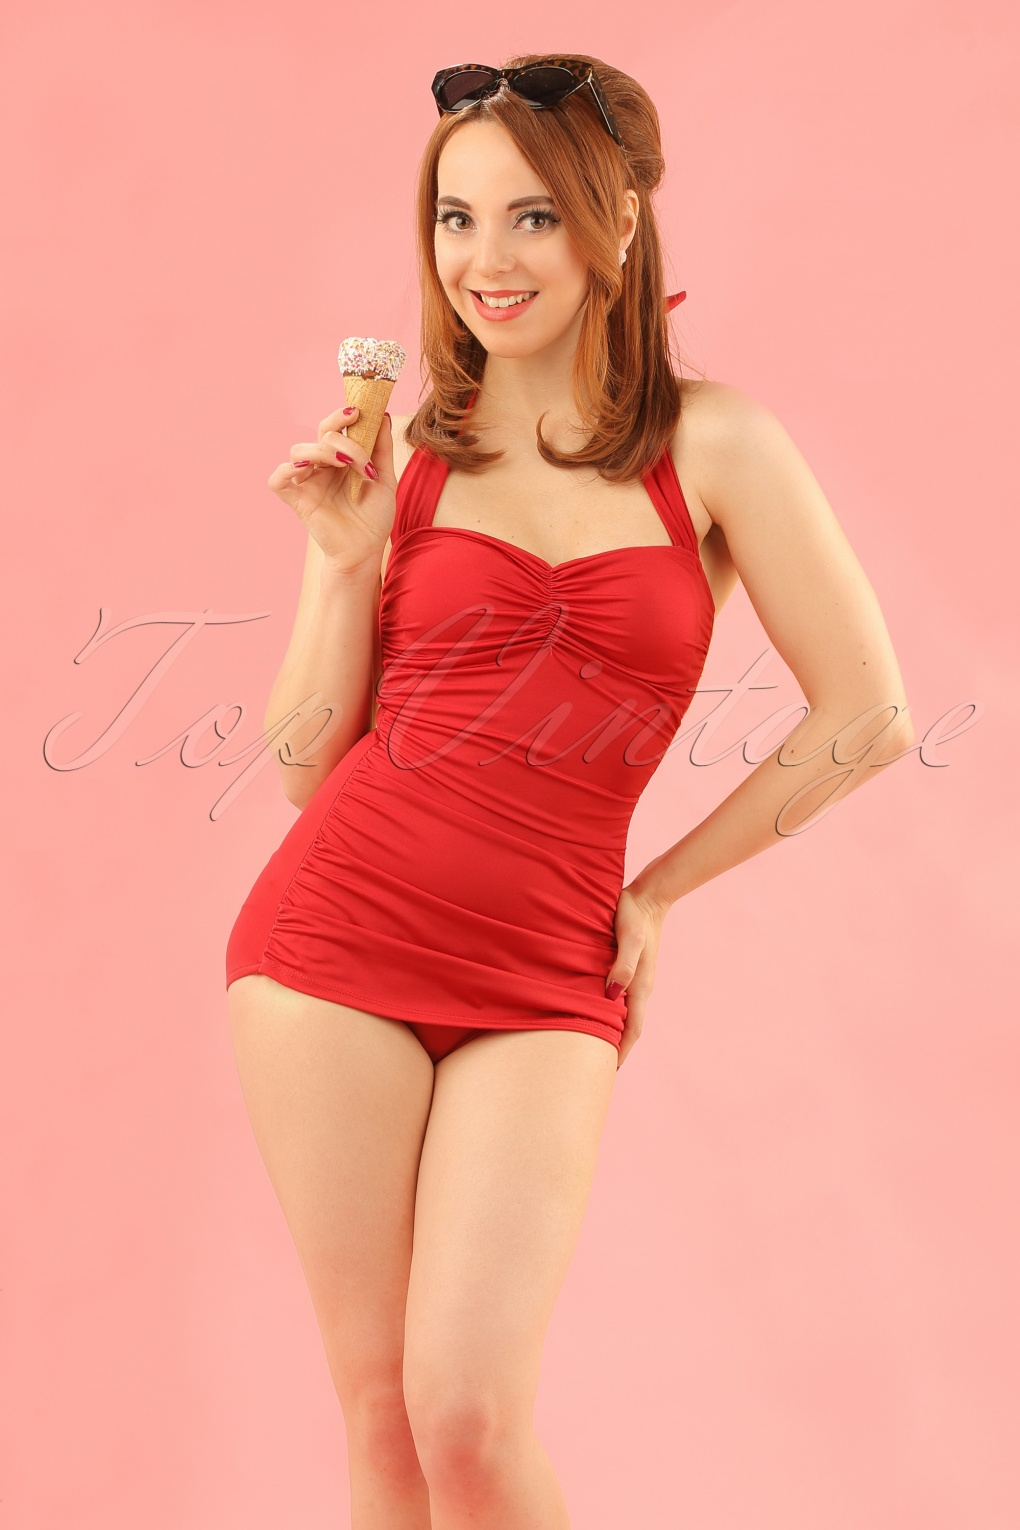 Vintage Inspired Retro Swimsuits Classic Fifties One Piece Swimsuit in Red £90.19 AT vintagedancer.com